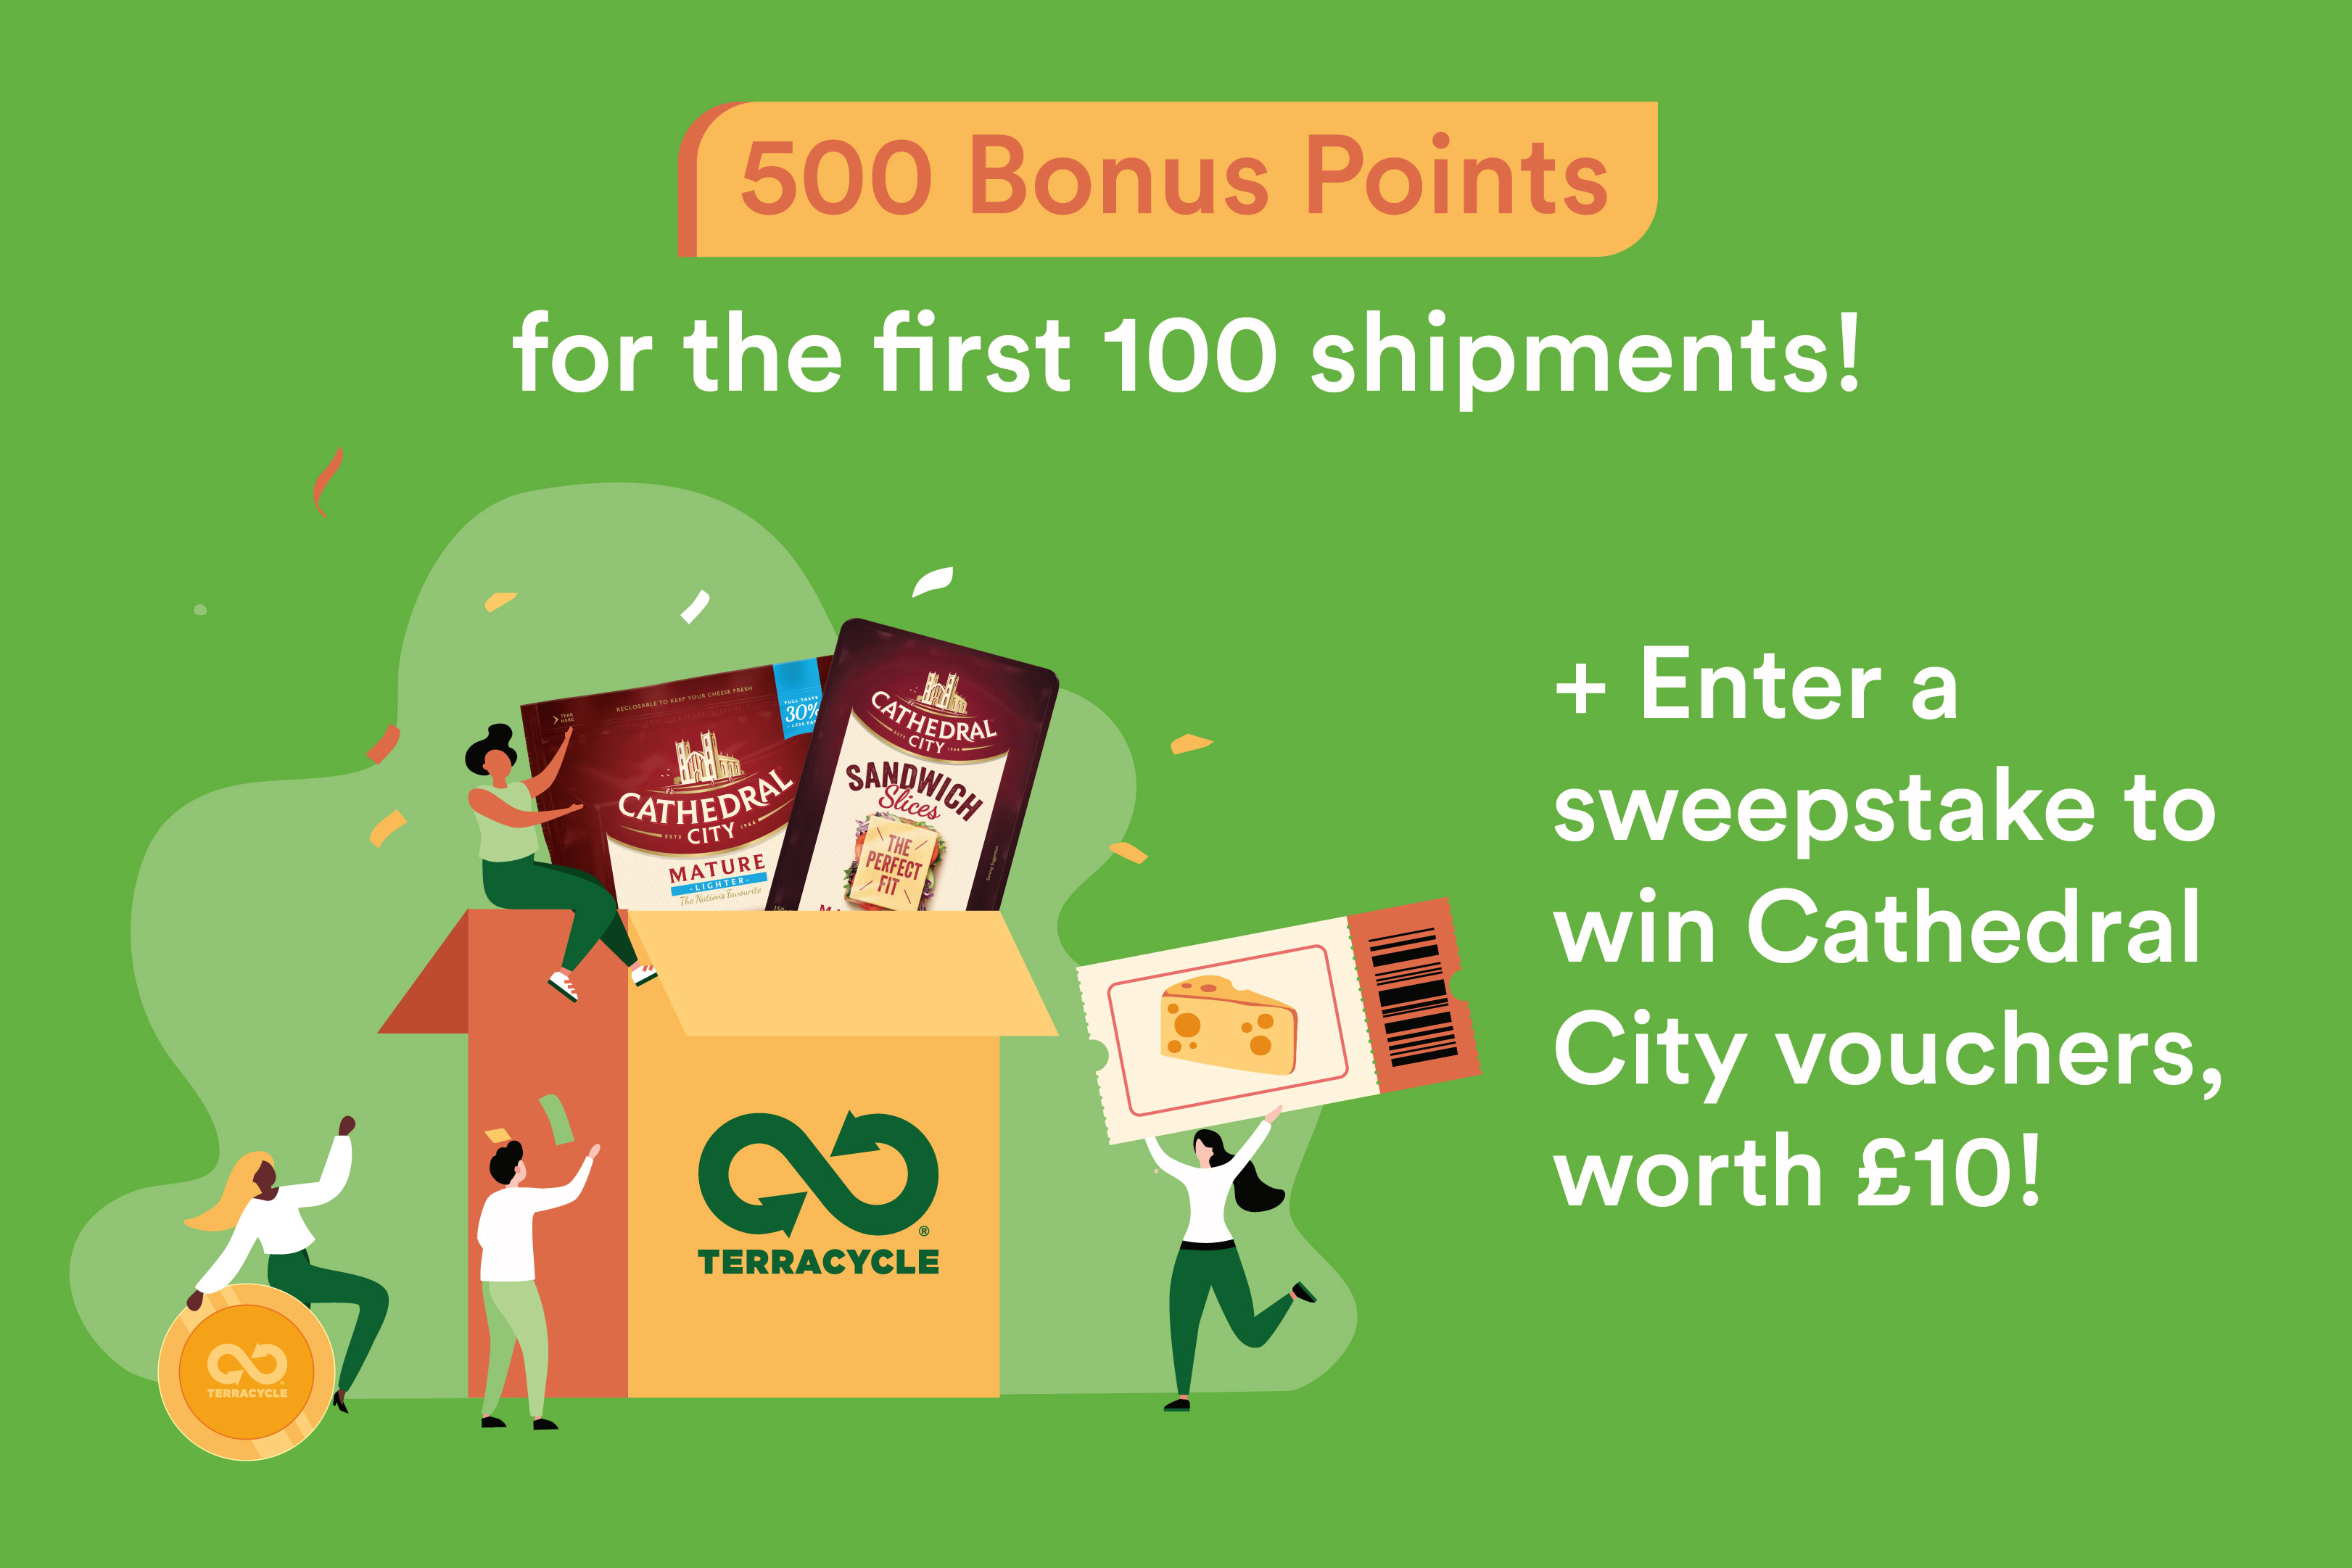 1 TerraCycle® point is worth £0.01.